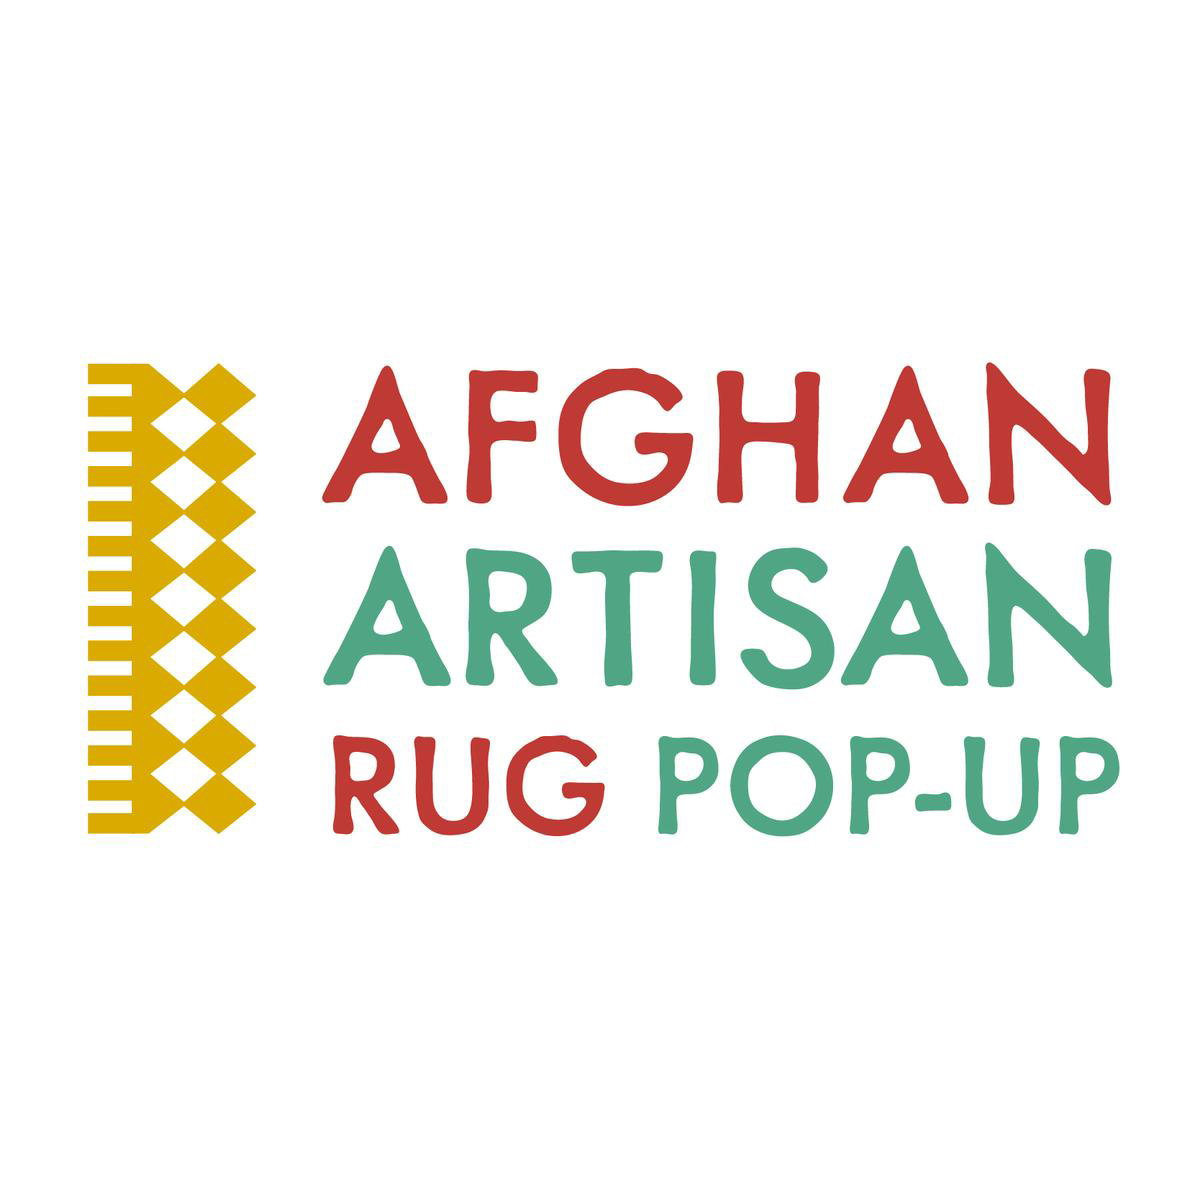 IIDA NY Residential Forum - Afghan Artisan Rug Pop-up Private Preview